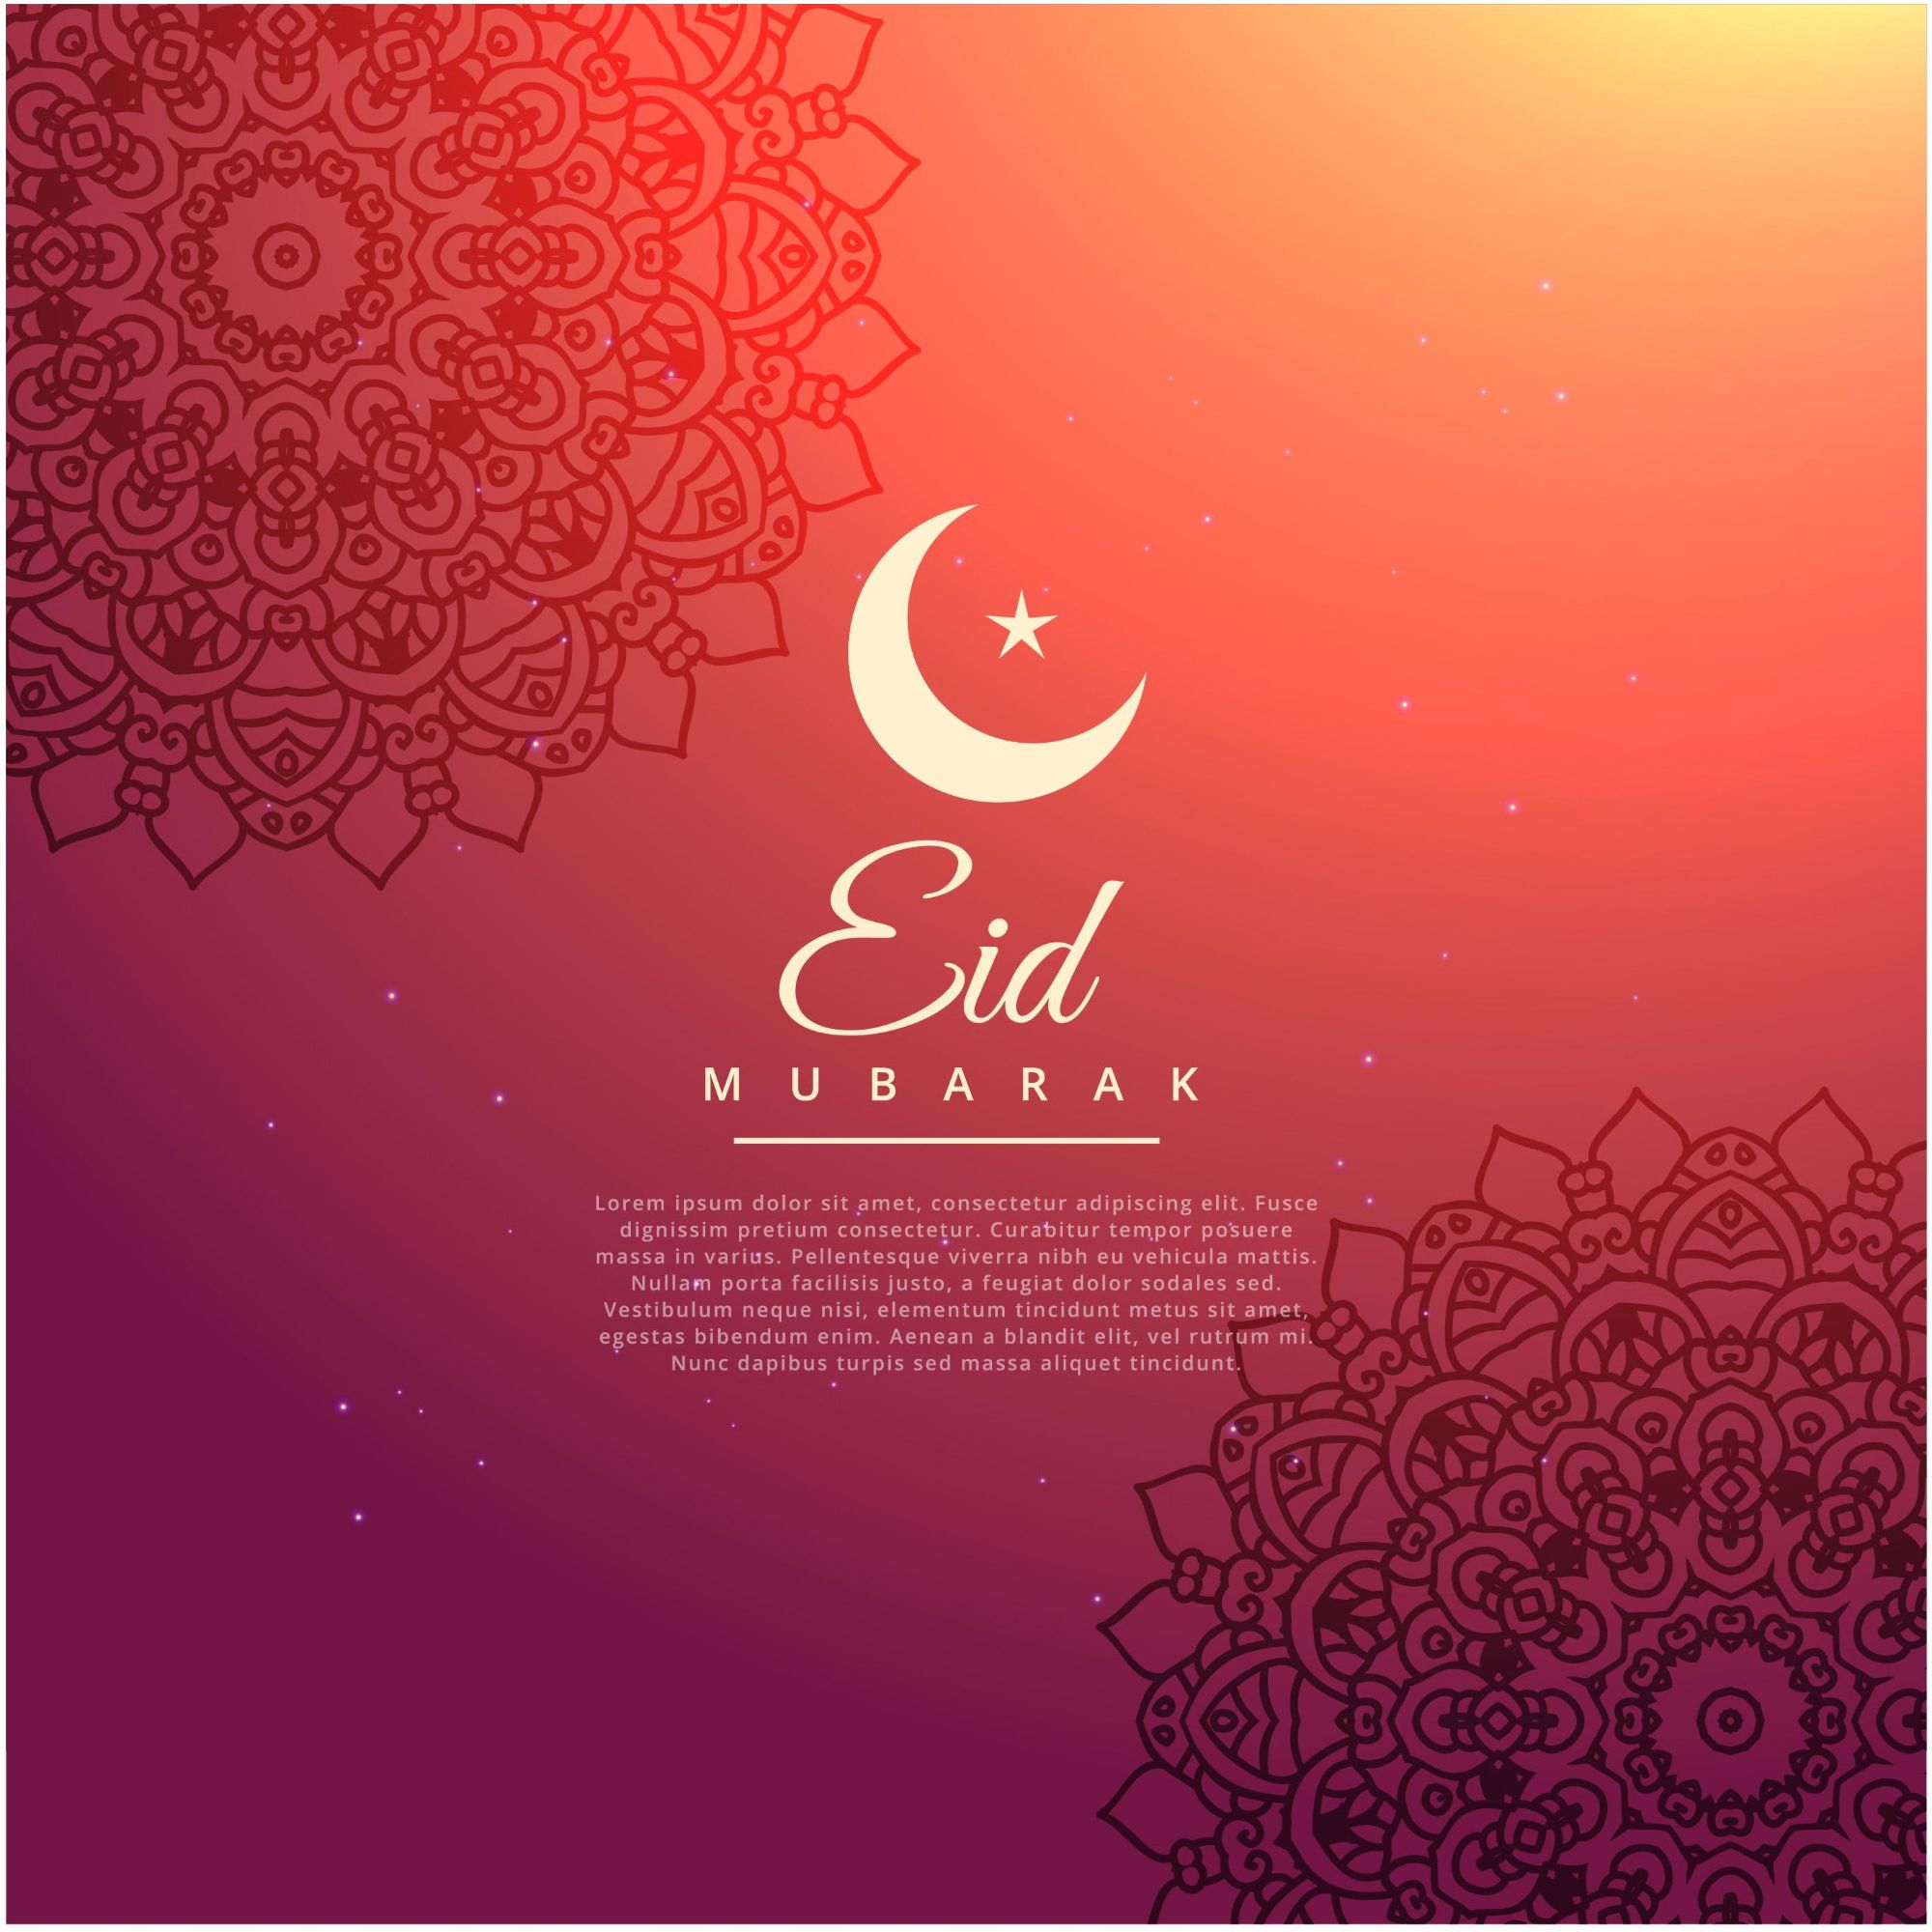 Eid Mubarak Islamic Greeting Banner Design Background Eid Mubarak